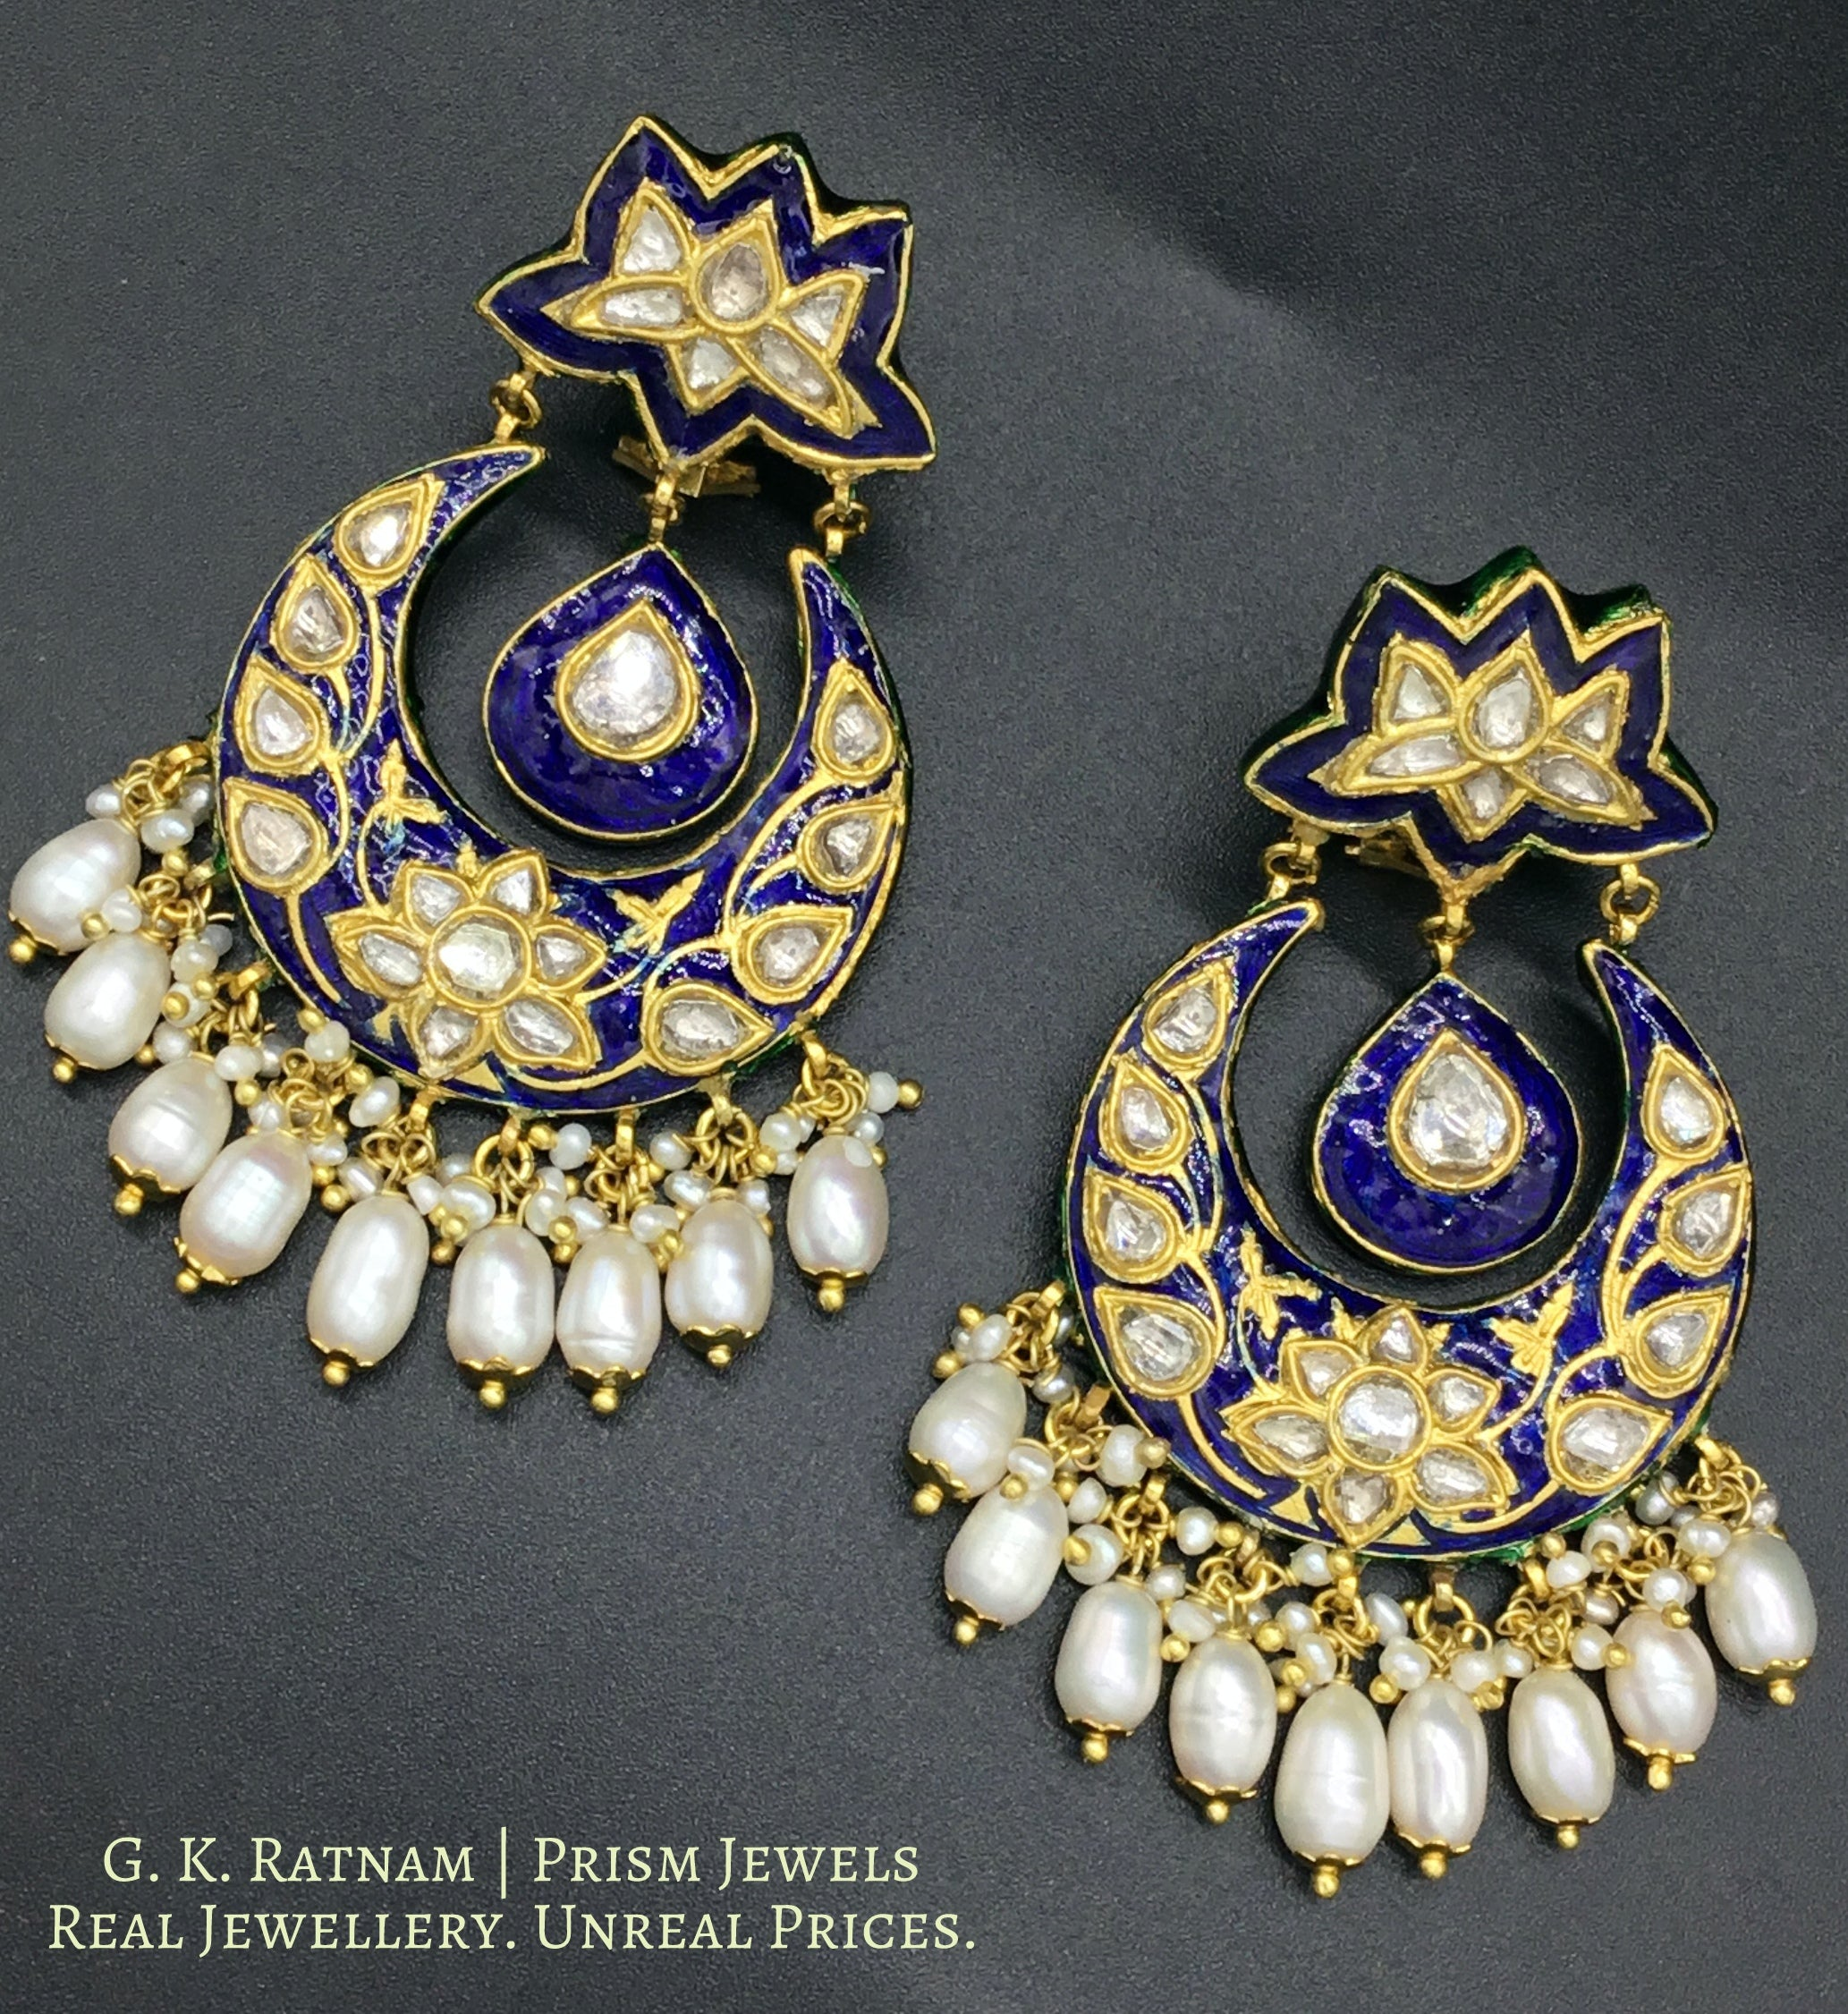 23k Gold and Diamond Polki Chand Bali Earring Pair with navy blue meenakari - gold diamond polki kundan meena jadau jewellery